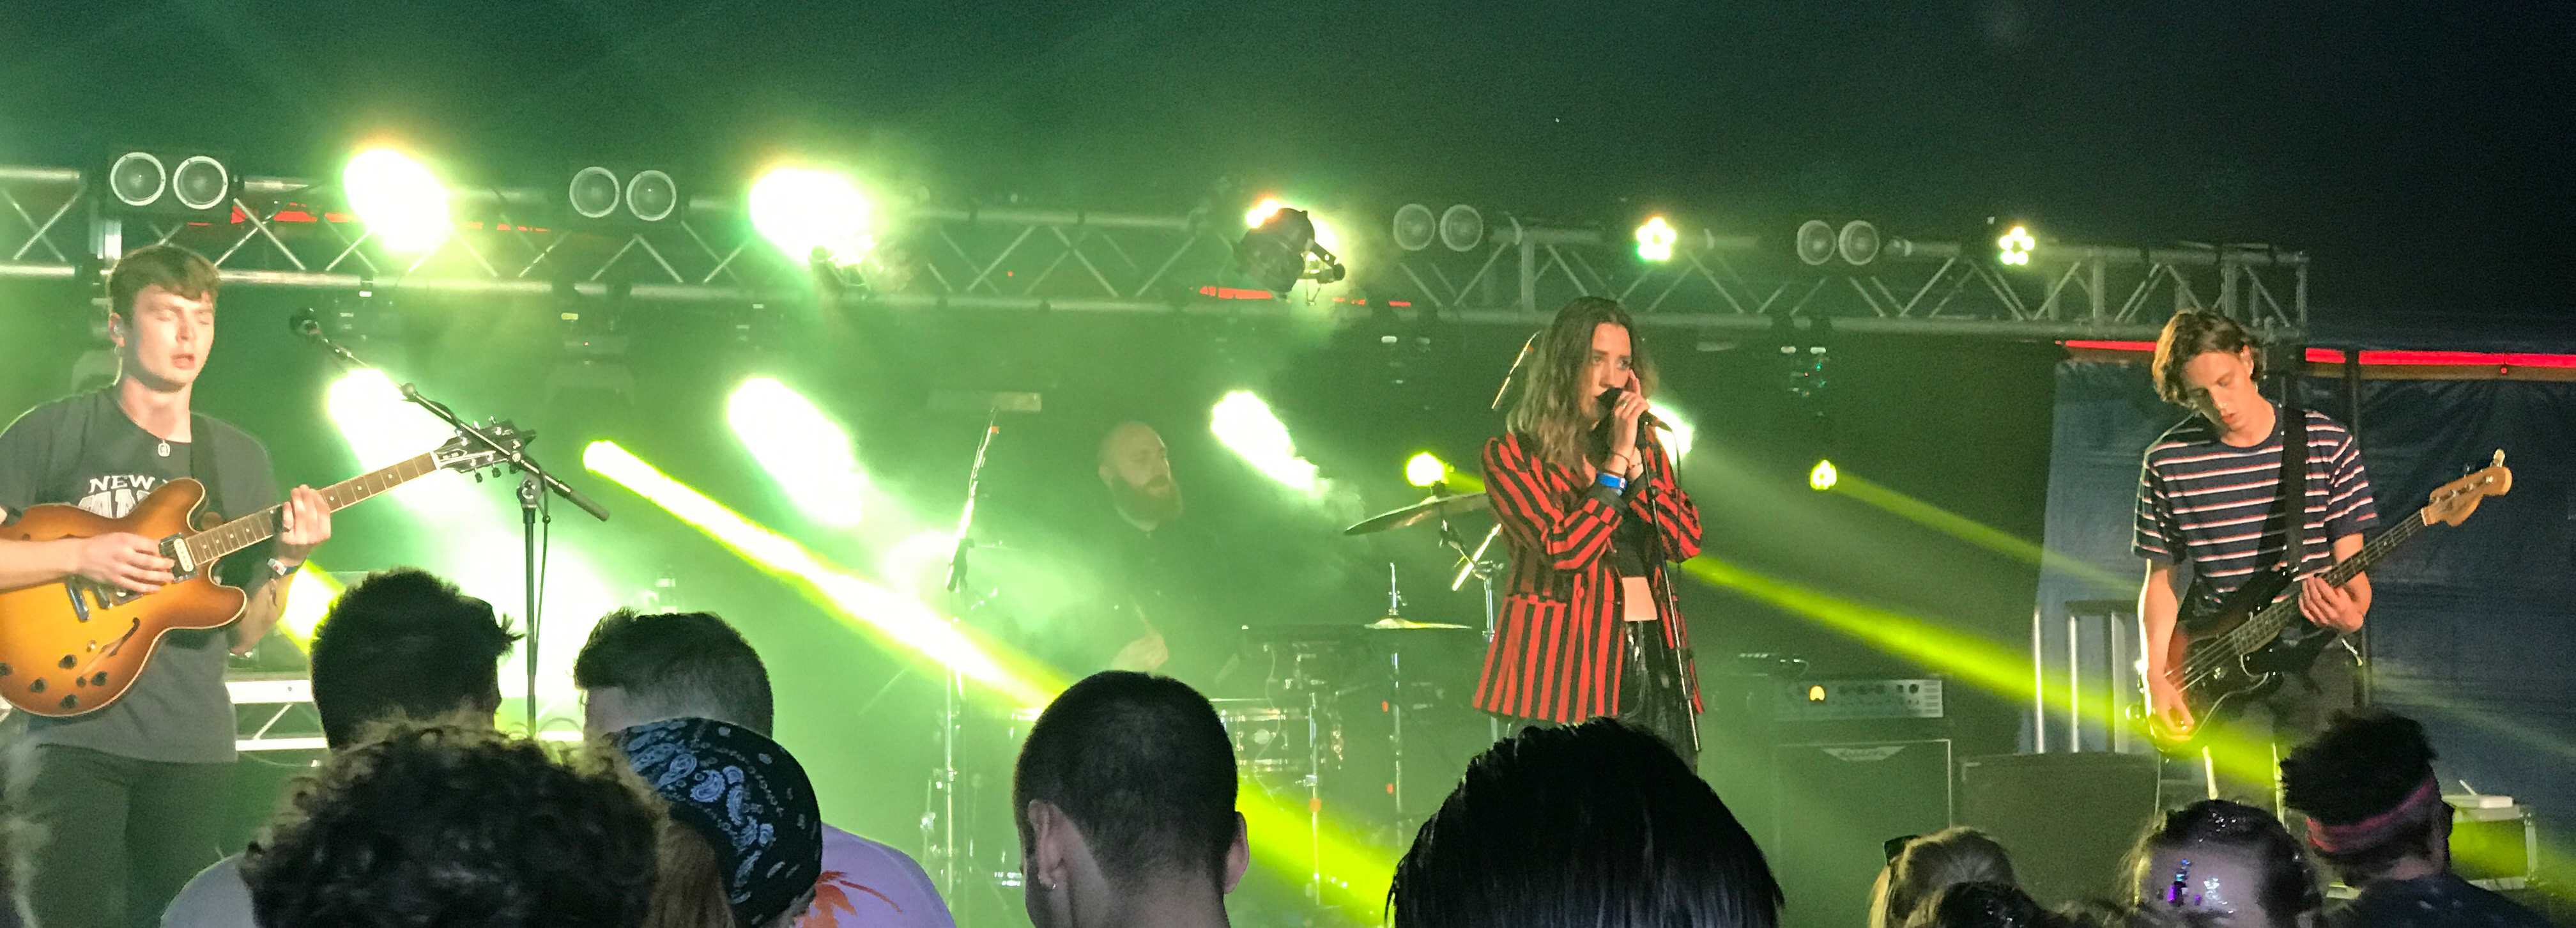 Yonaka at the Invaders of the Future stage at Bestival 2017 uk music festival